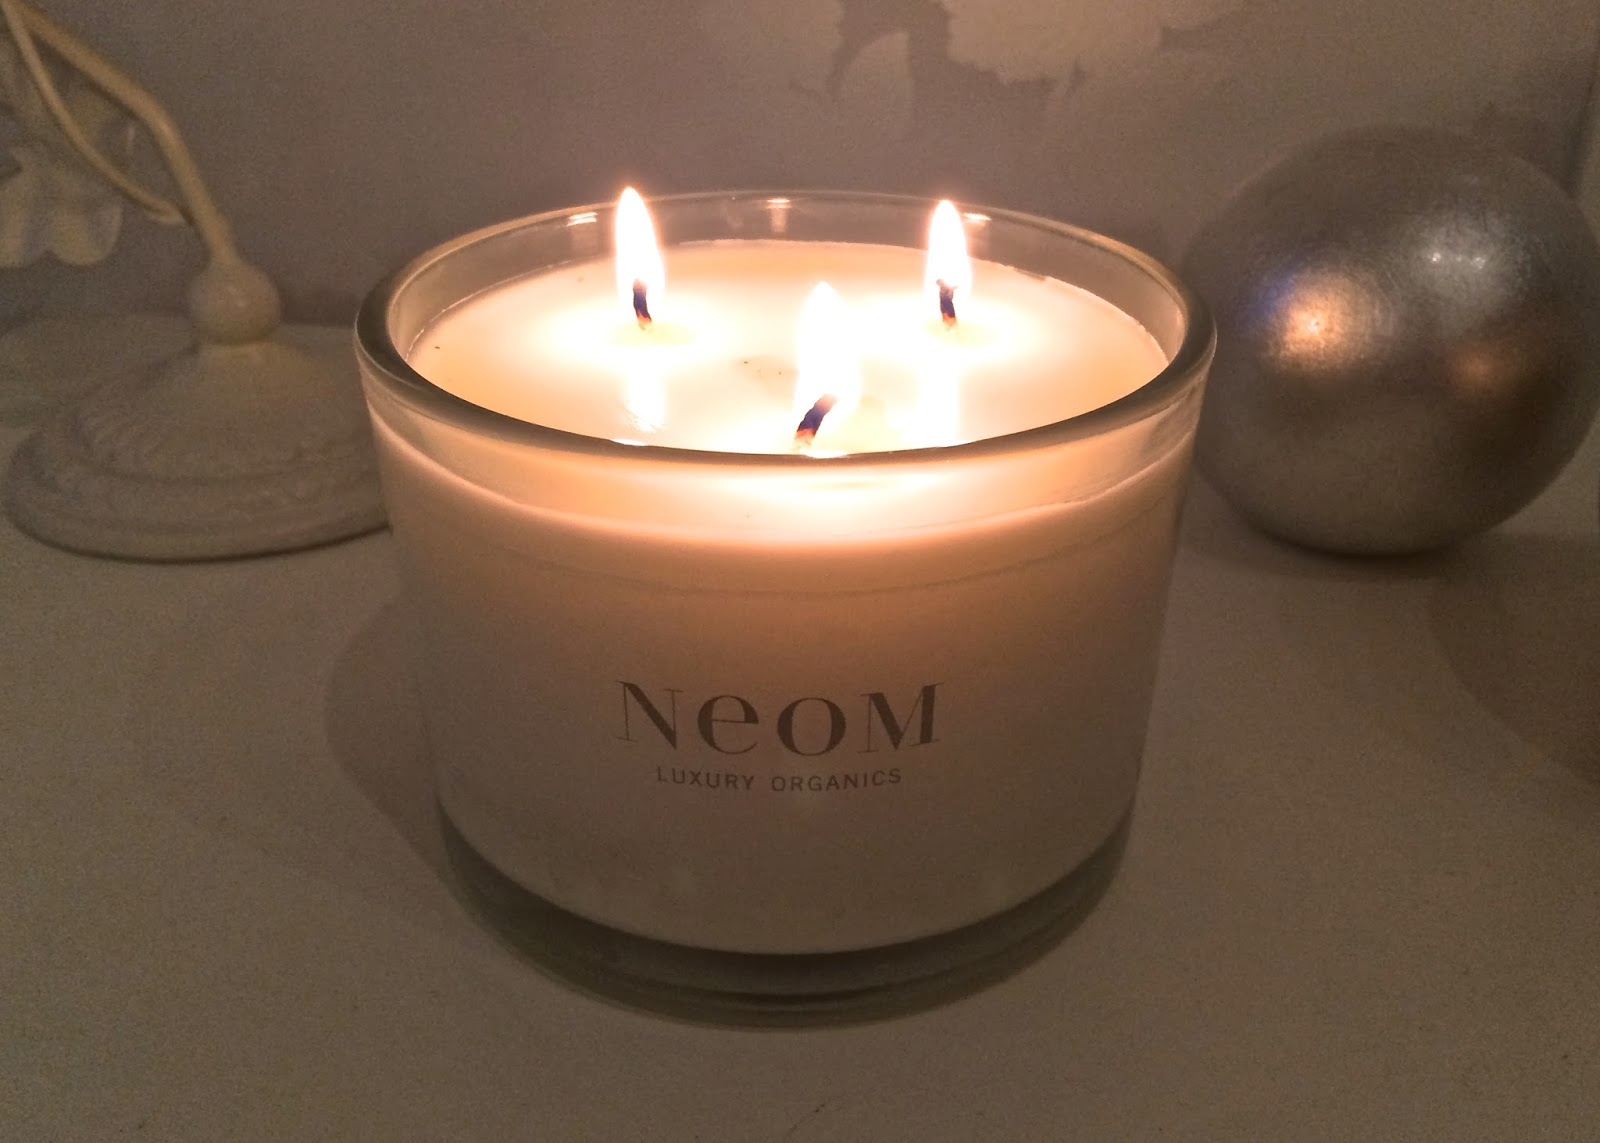 Neom Organics Real Luxury Home Candle Flutter And Sparkle